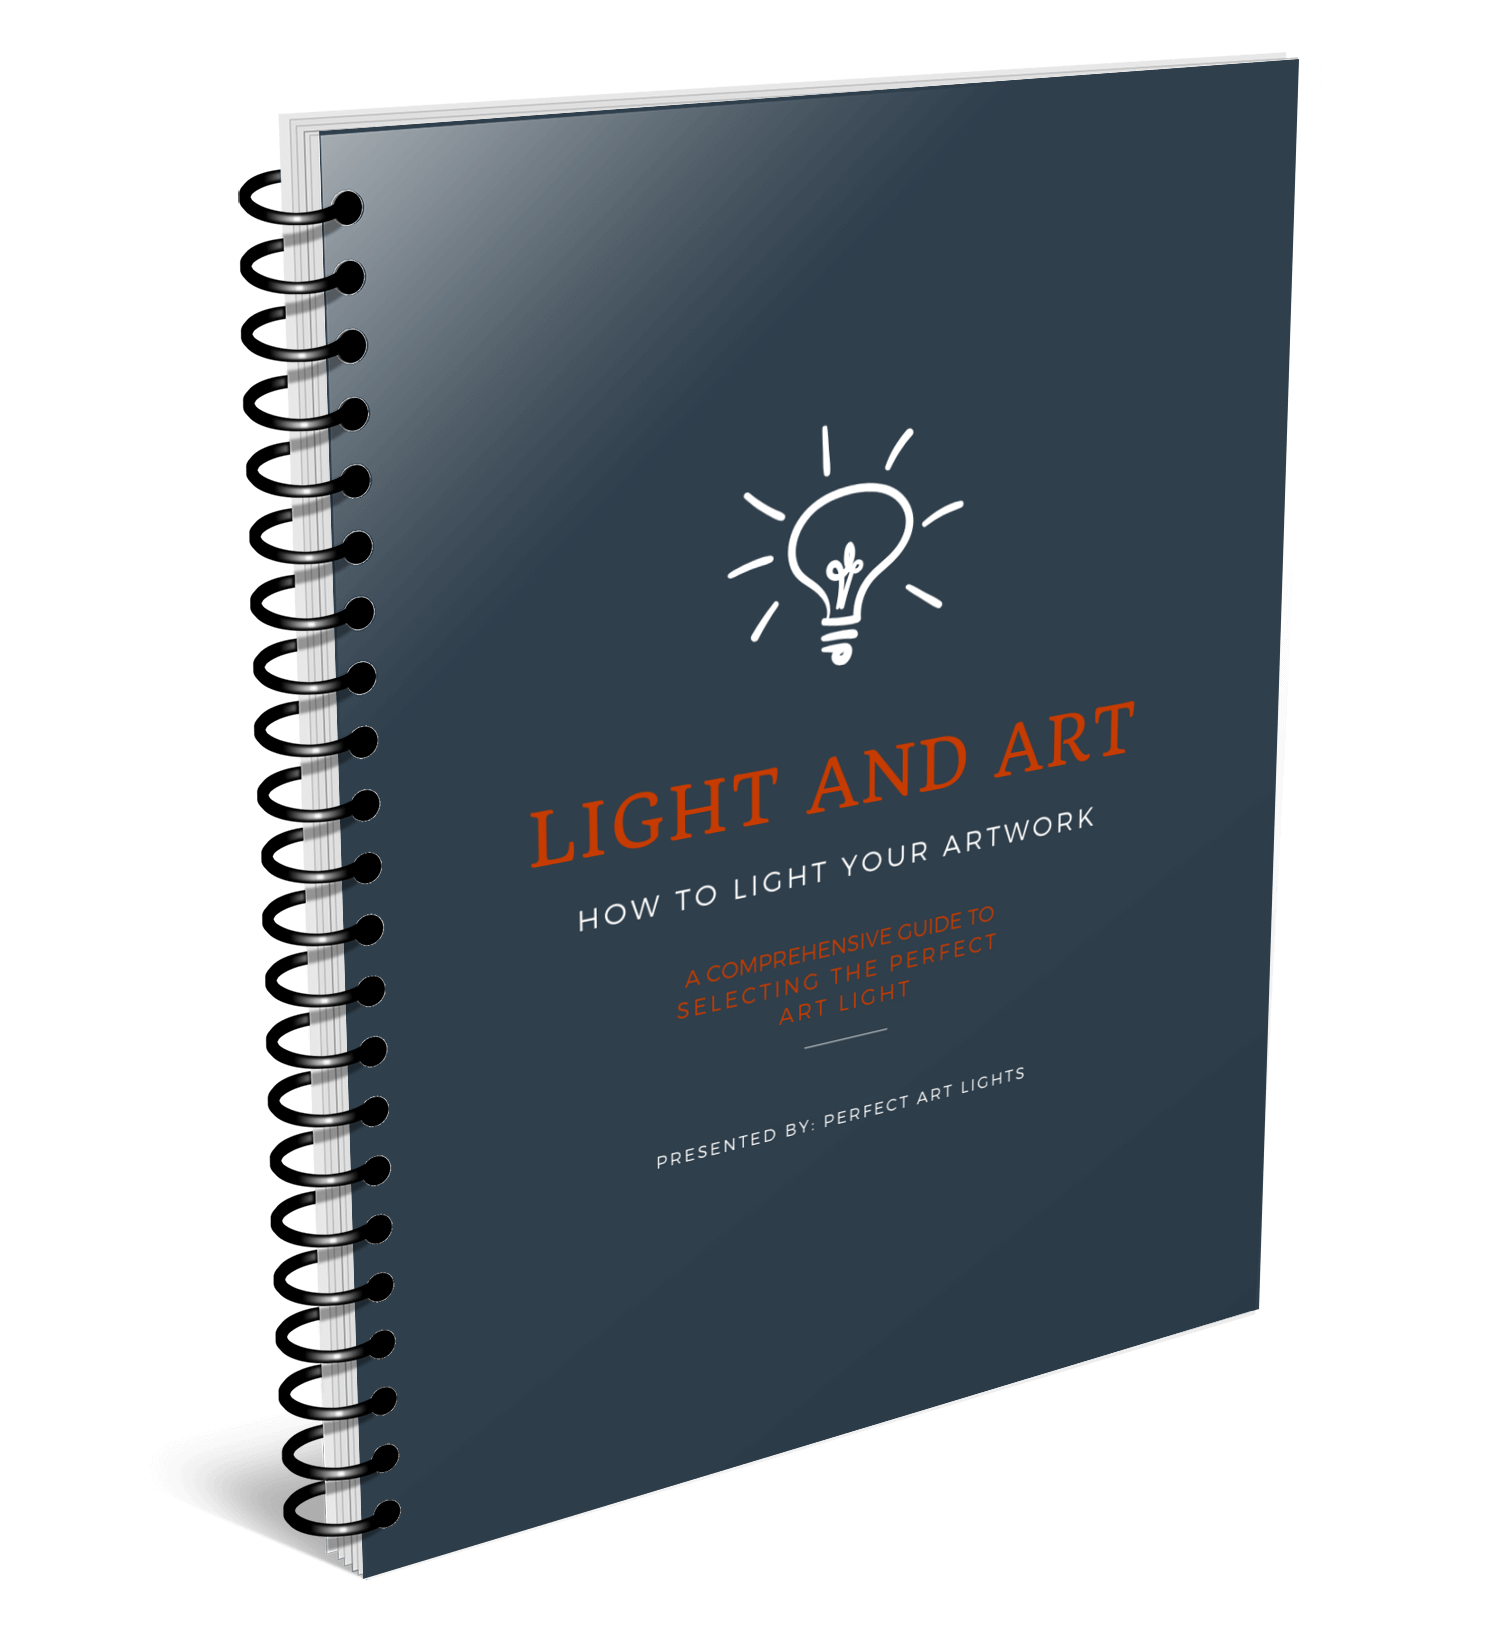 How to light your artwork